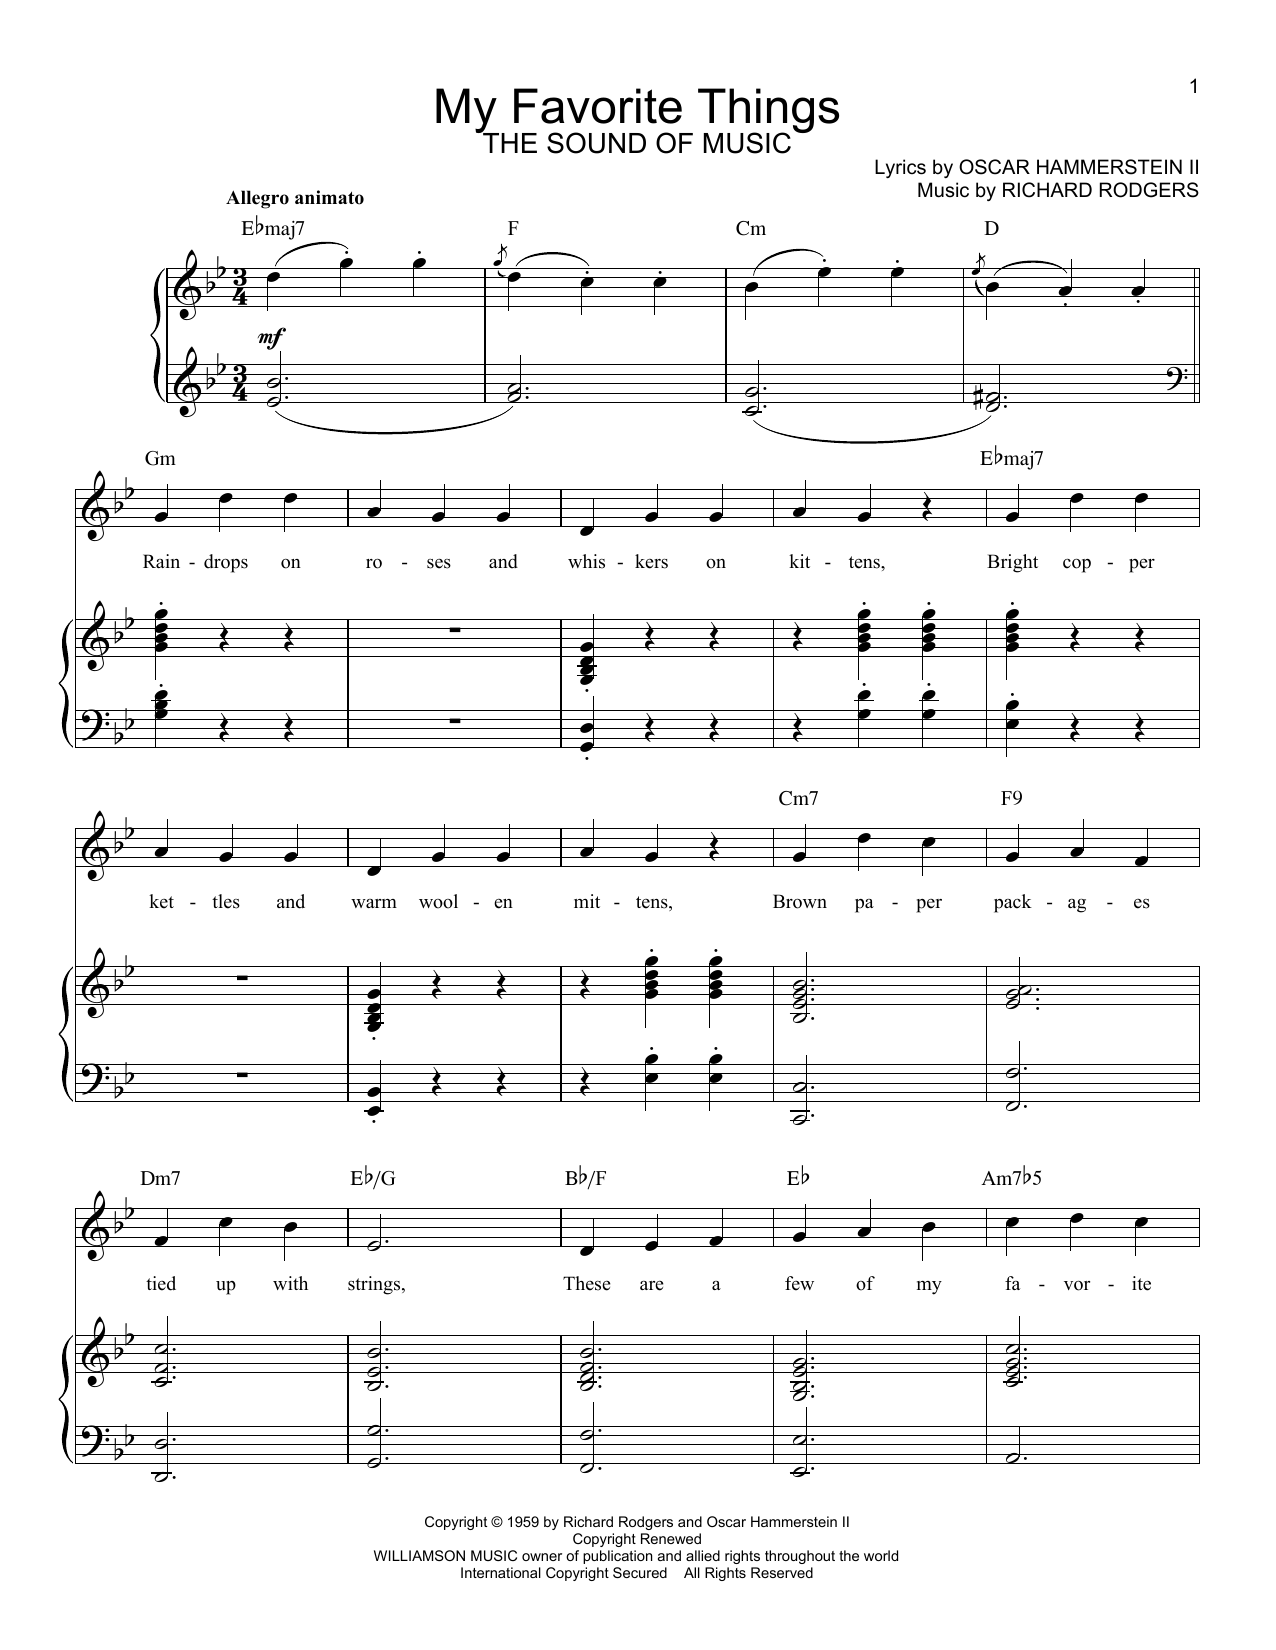 My Favorite Things sheet music for voice and piano by Richard Rodgers